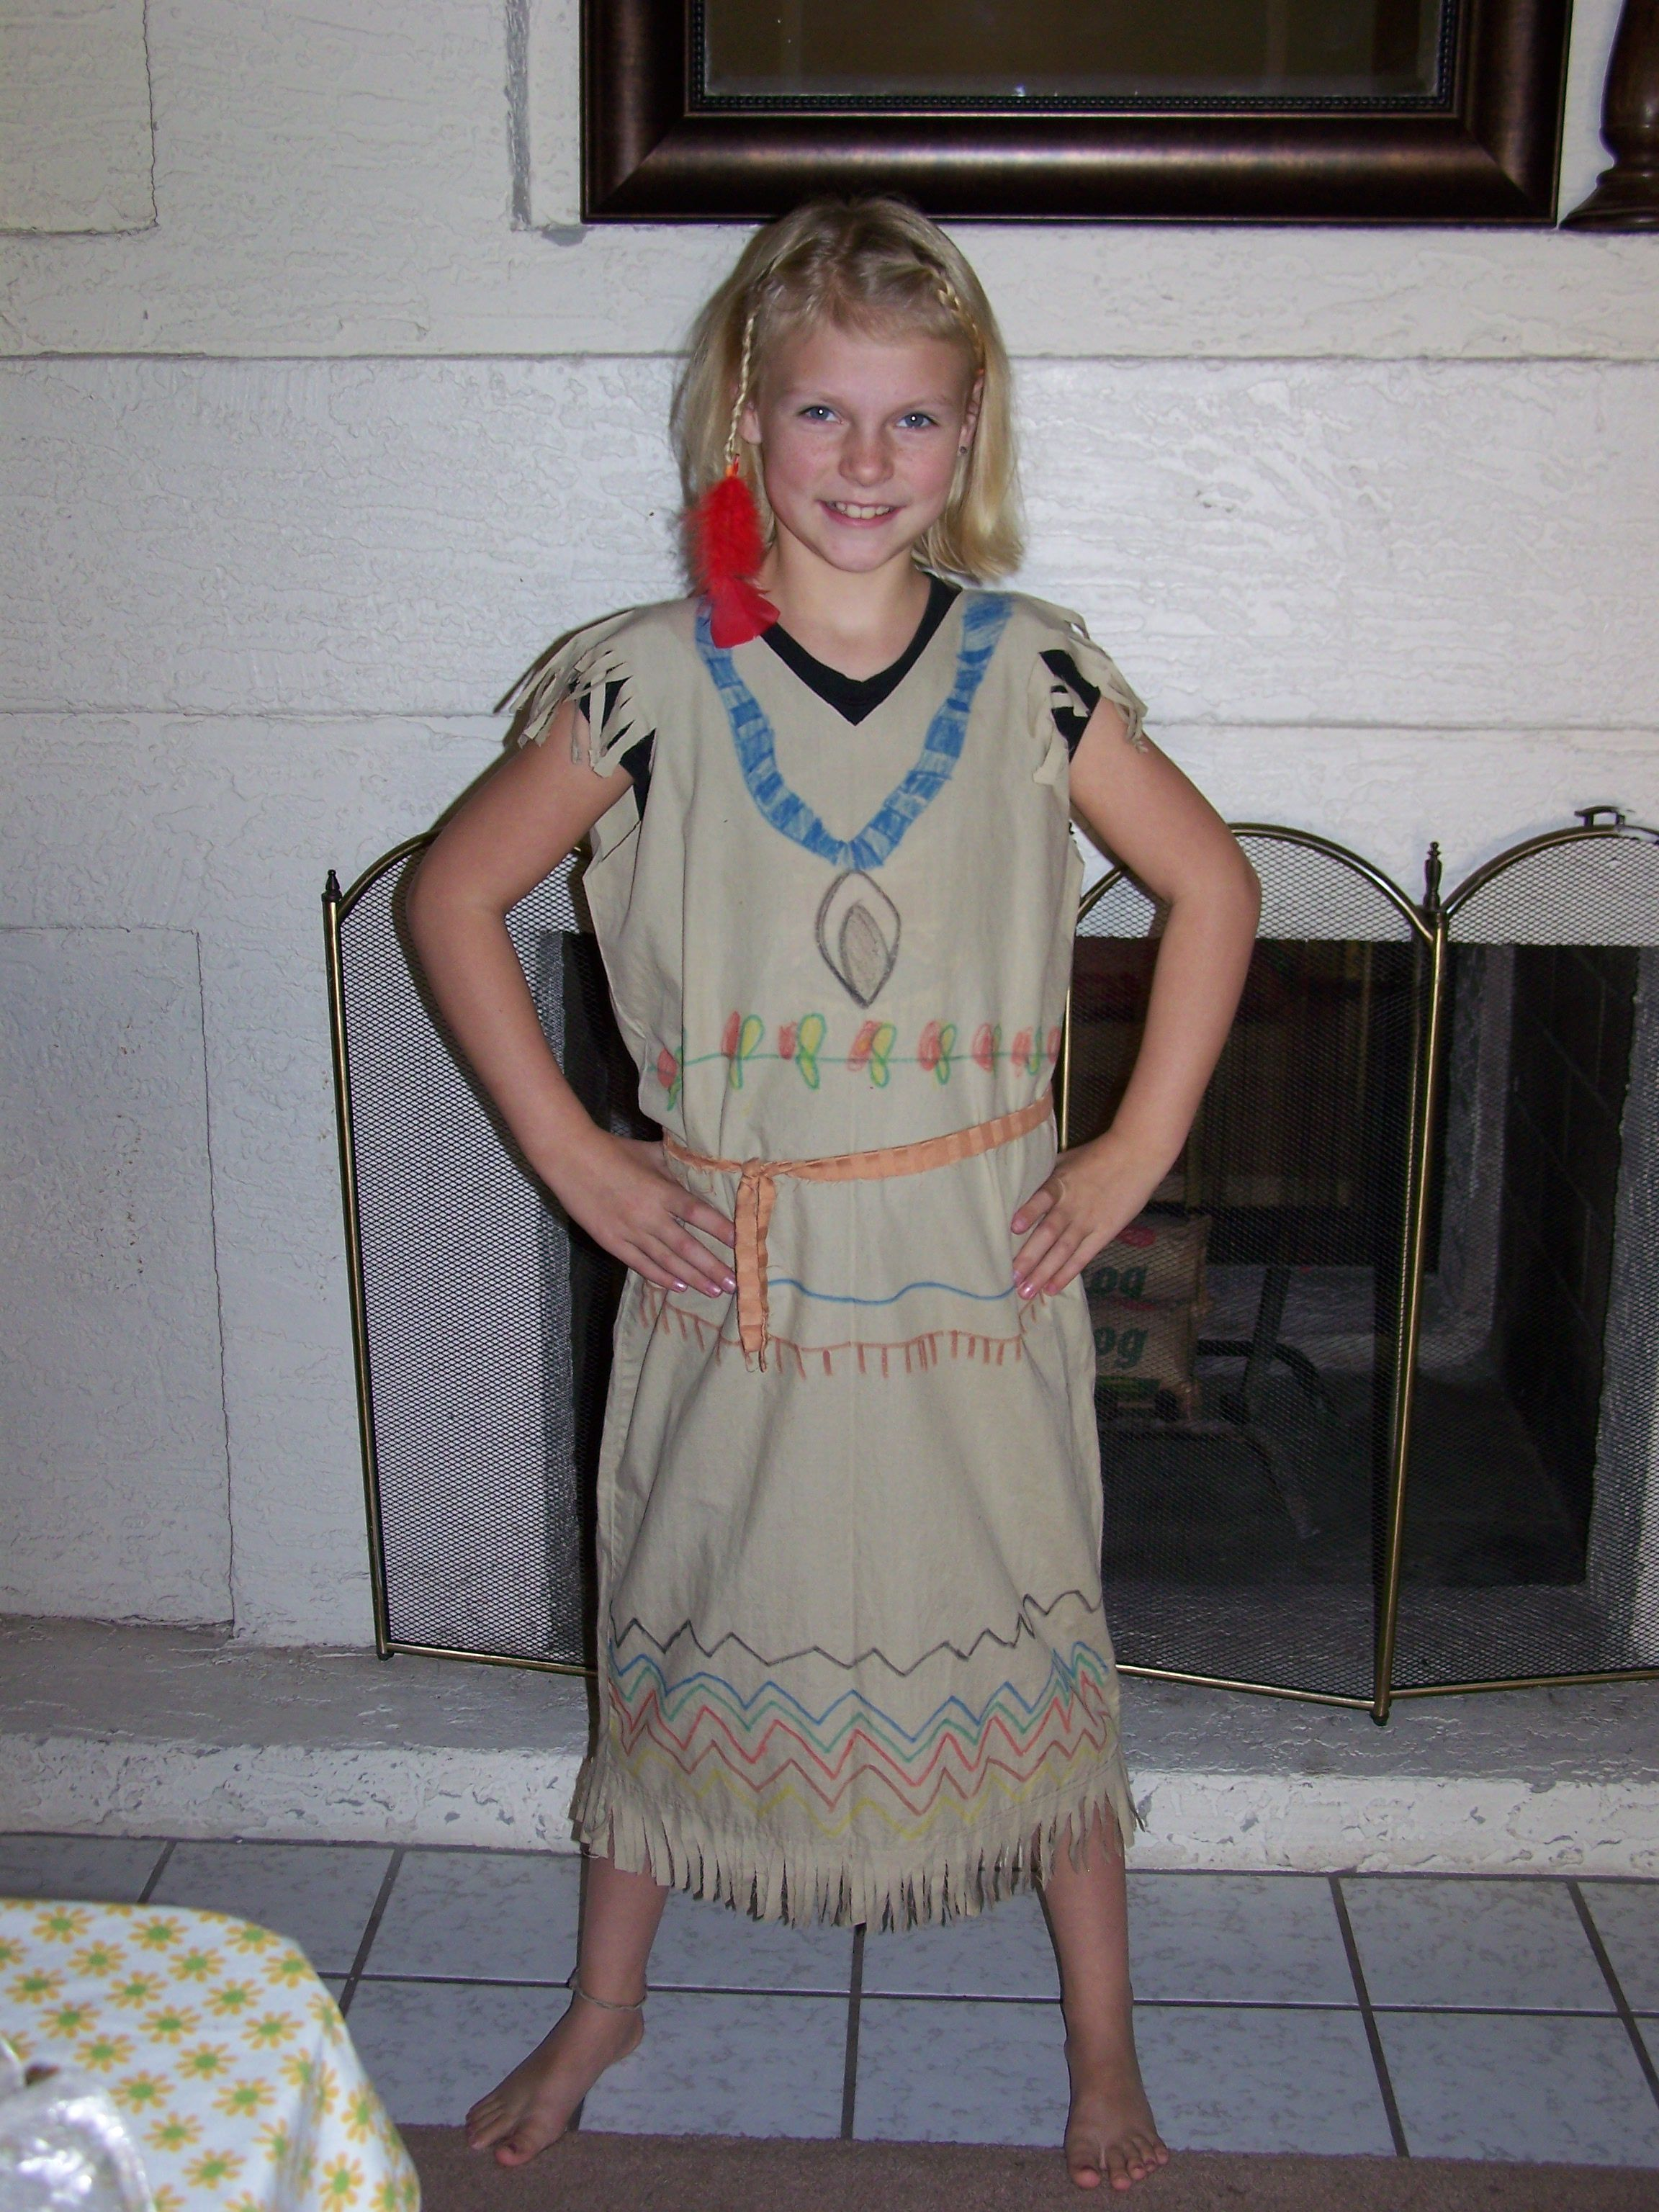 Thanksgiving Costumes - Good Ideas and Tips